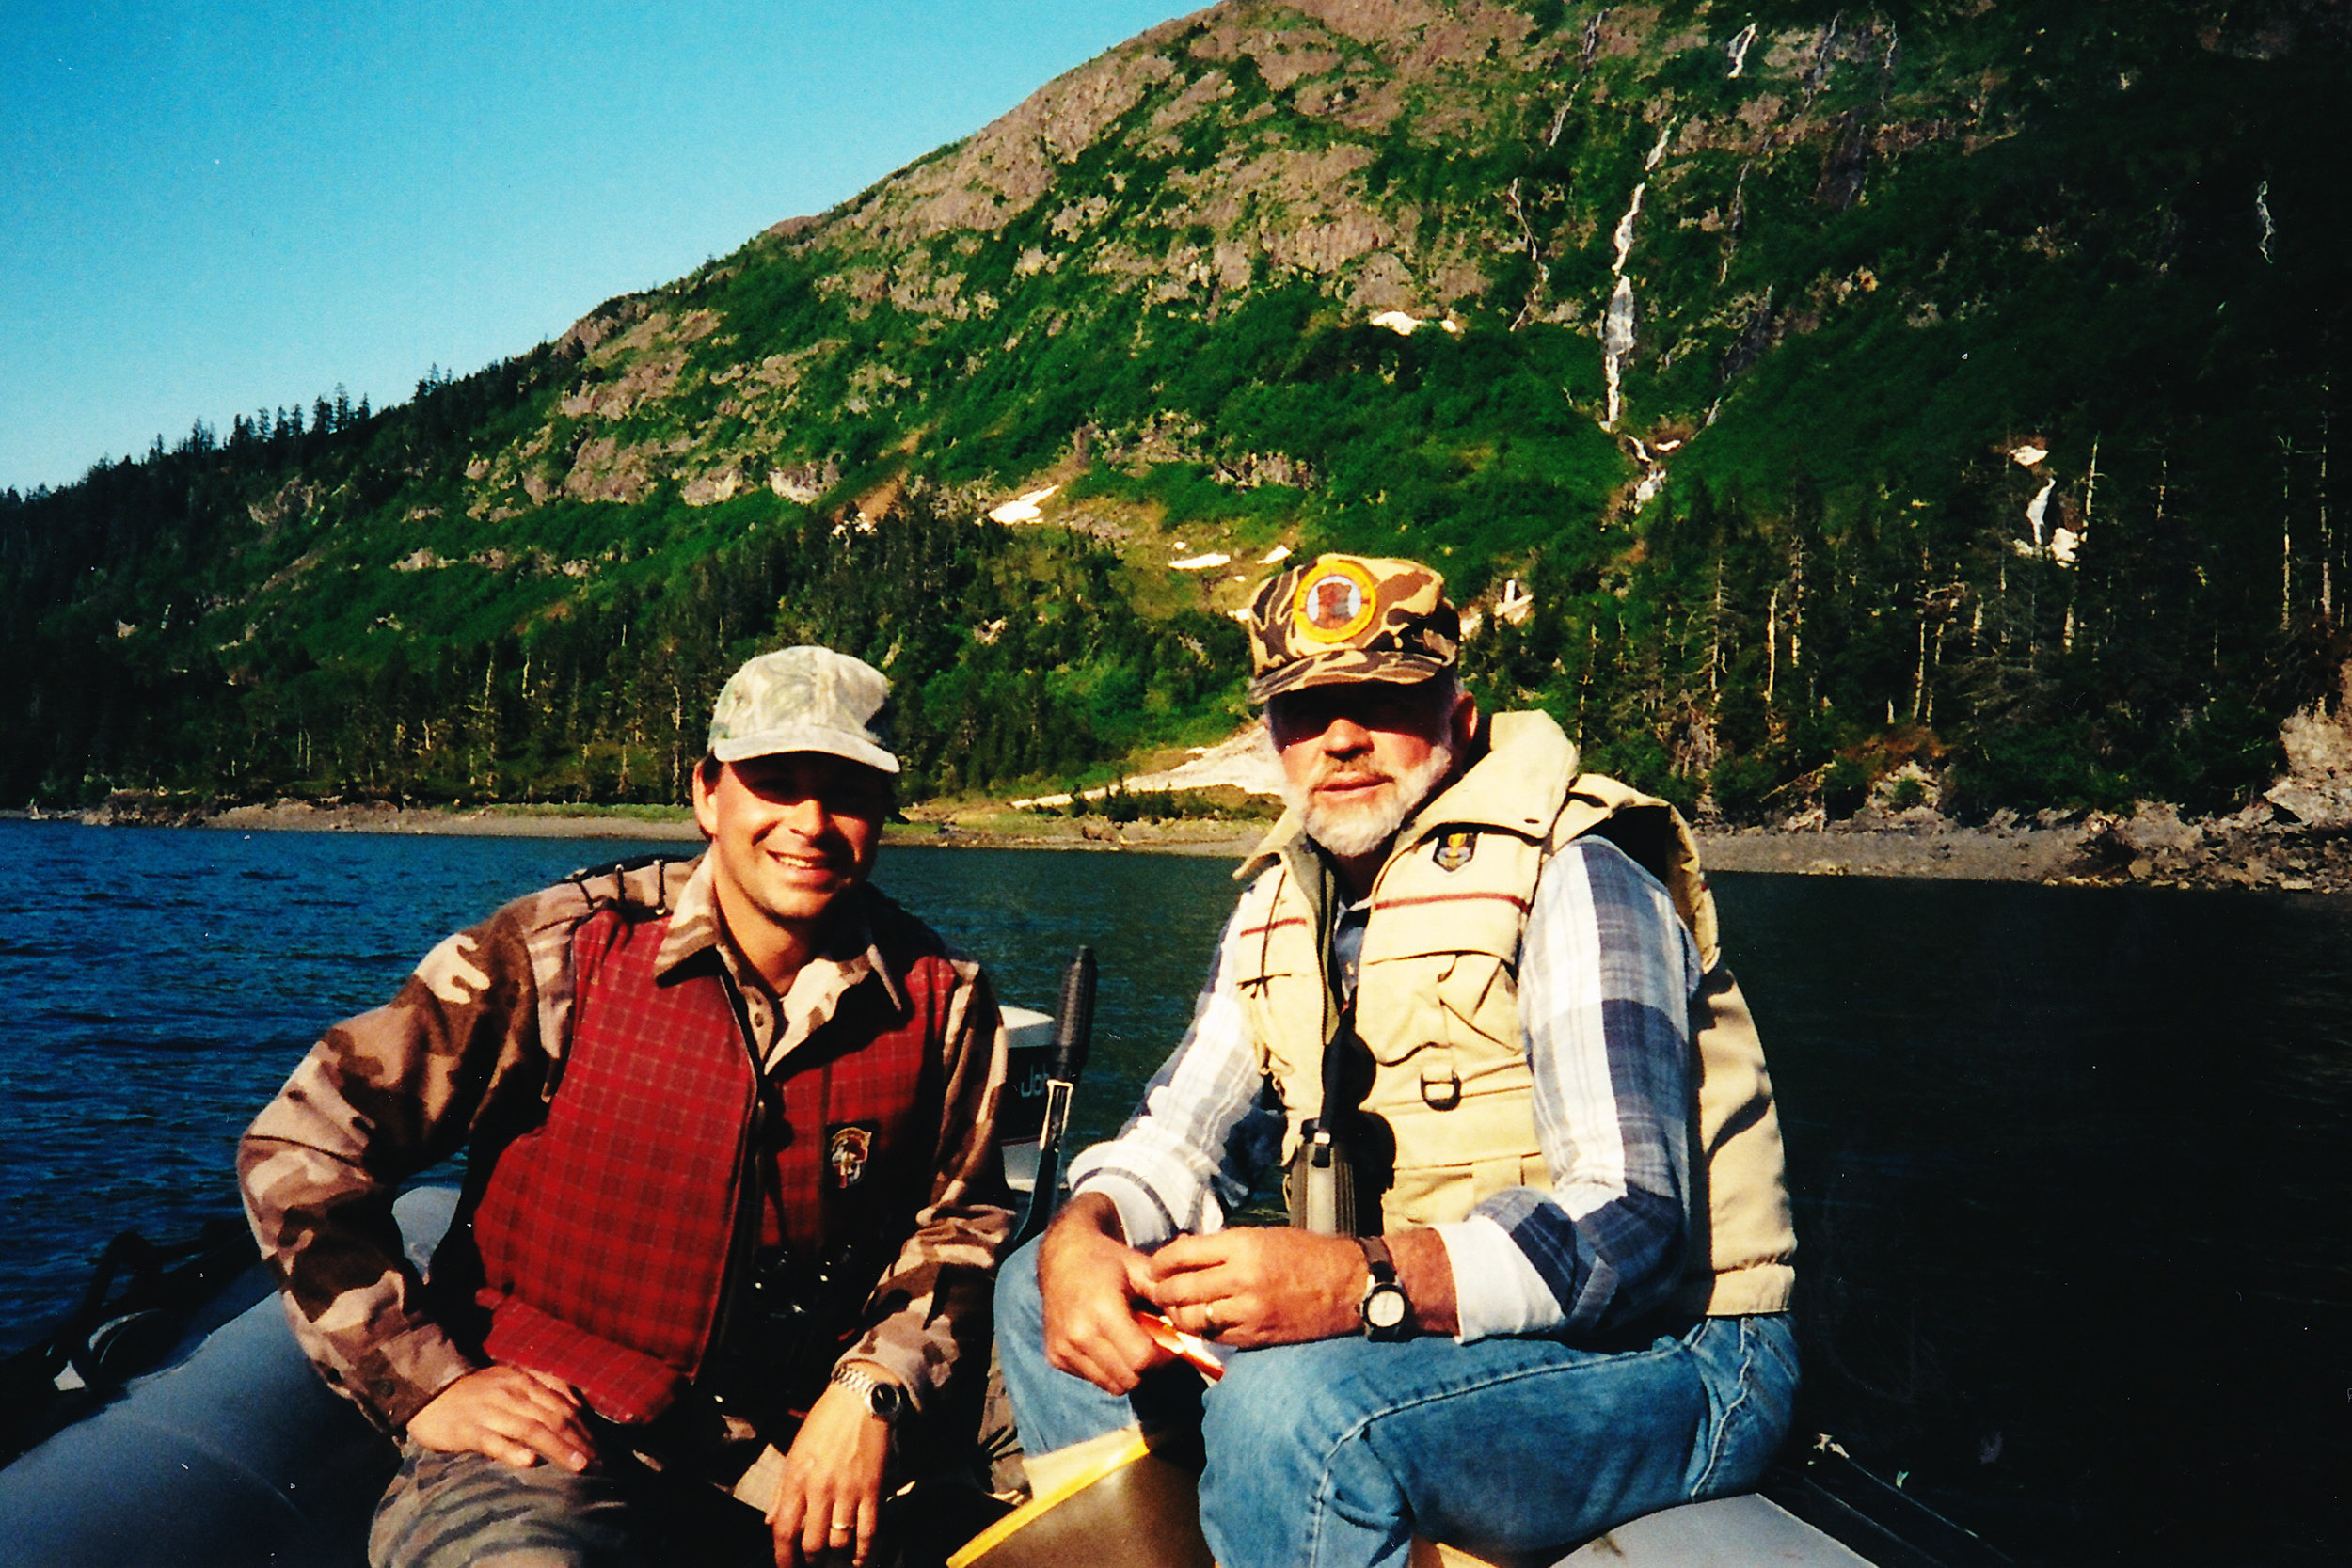 My son-in-law Sagen and me on a spring black bear hunt in Prince William Sound.